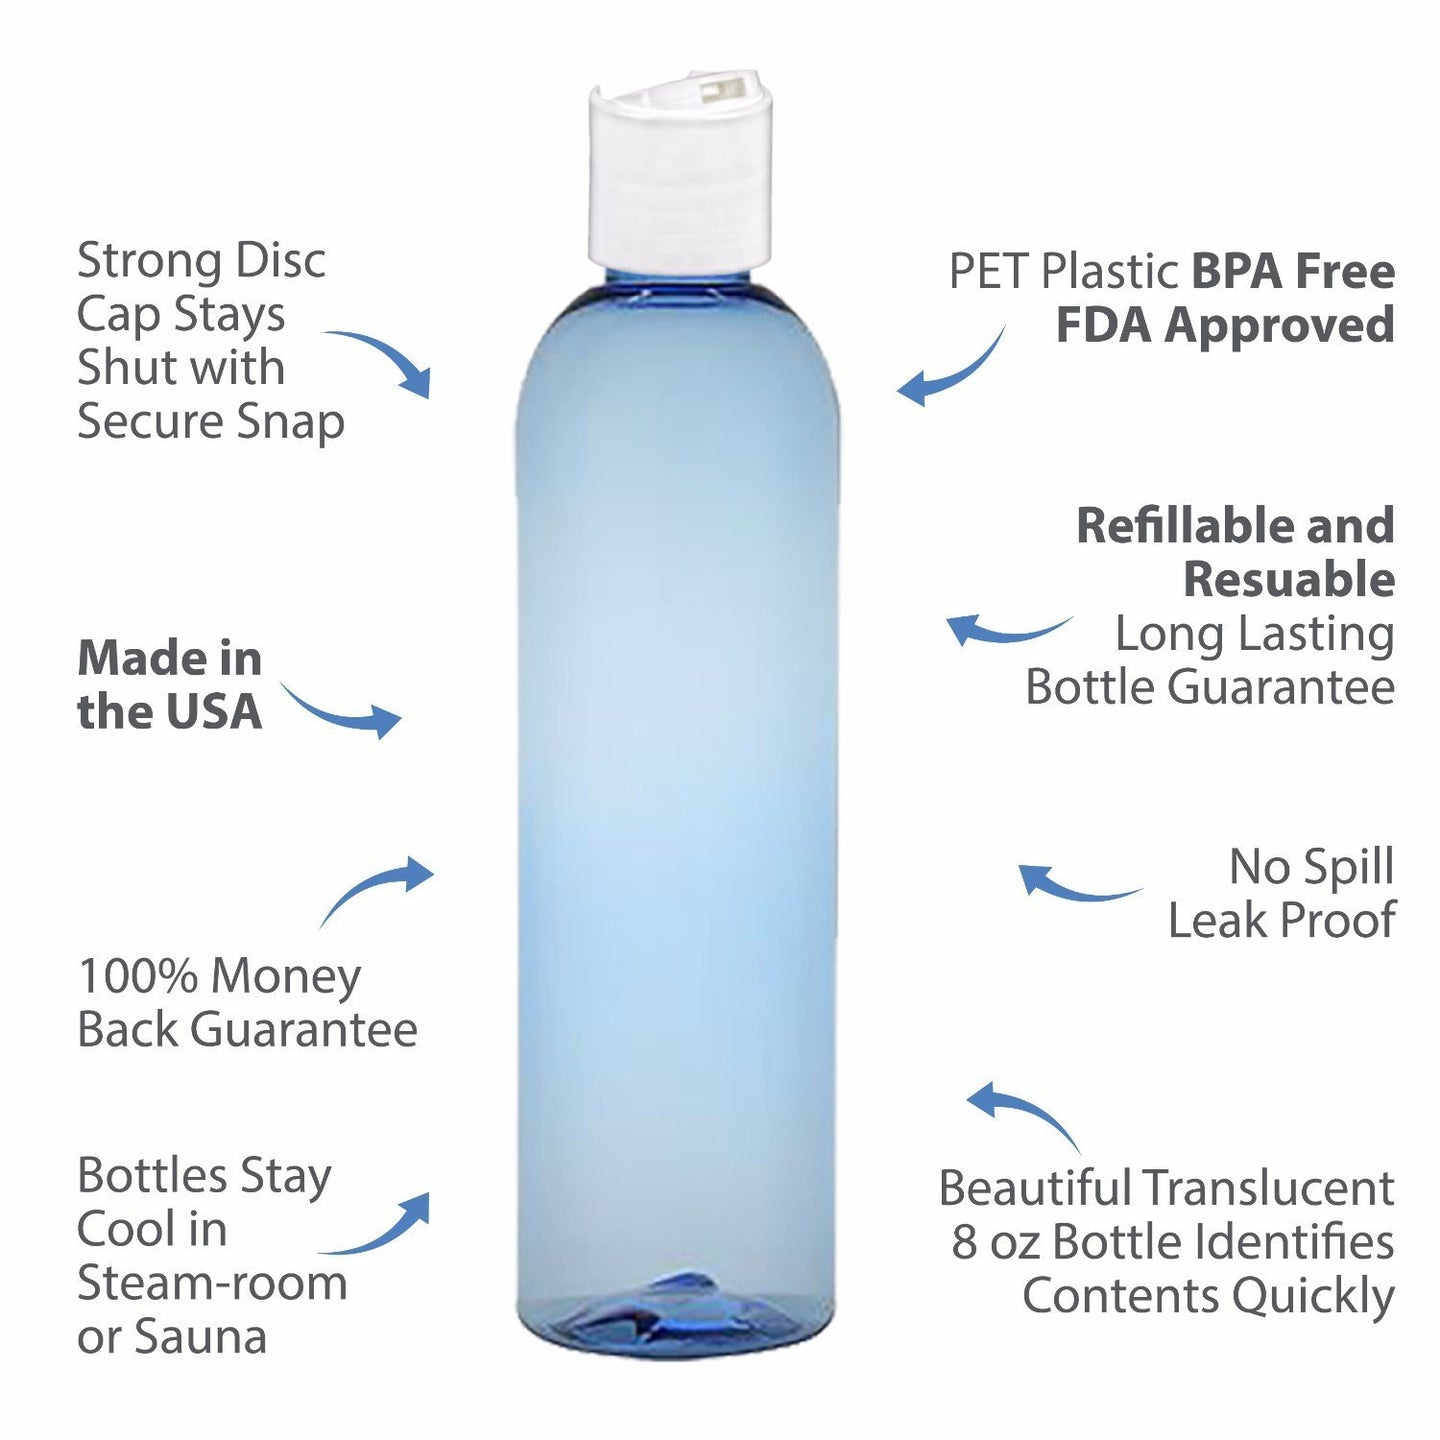 MoYo Natural Labs 8 oz Travel Bottles, Empty Travel Containers with Disc Caps, BPA Free PET Plastic Squeezable Toiletry/Cosmetic Bottles (Pack of 100, Light Blue)